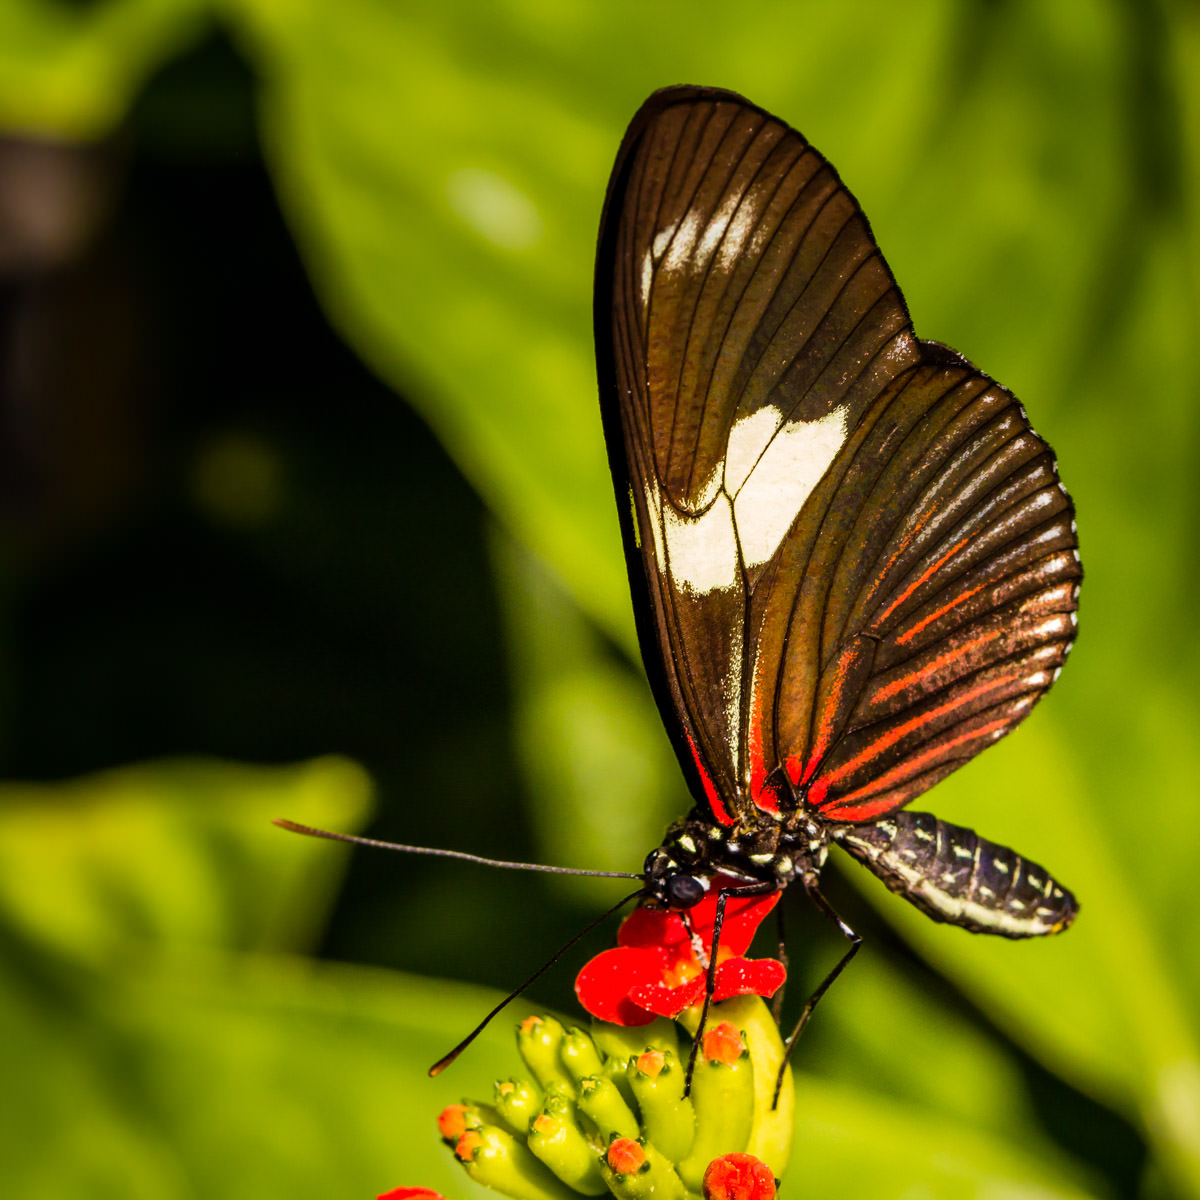 A butterfly enjoys a nectar snack at the Rosine Smith Sammons Butterfly House at the Texas Discovery Gardens in Dallas' Fair Park